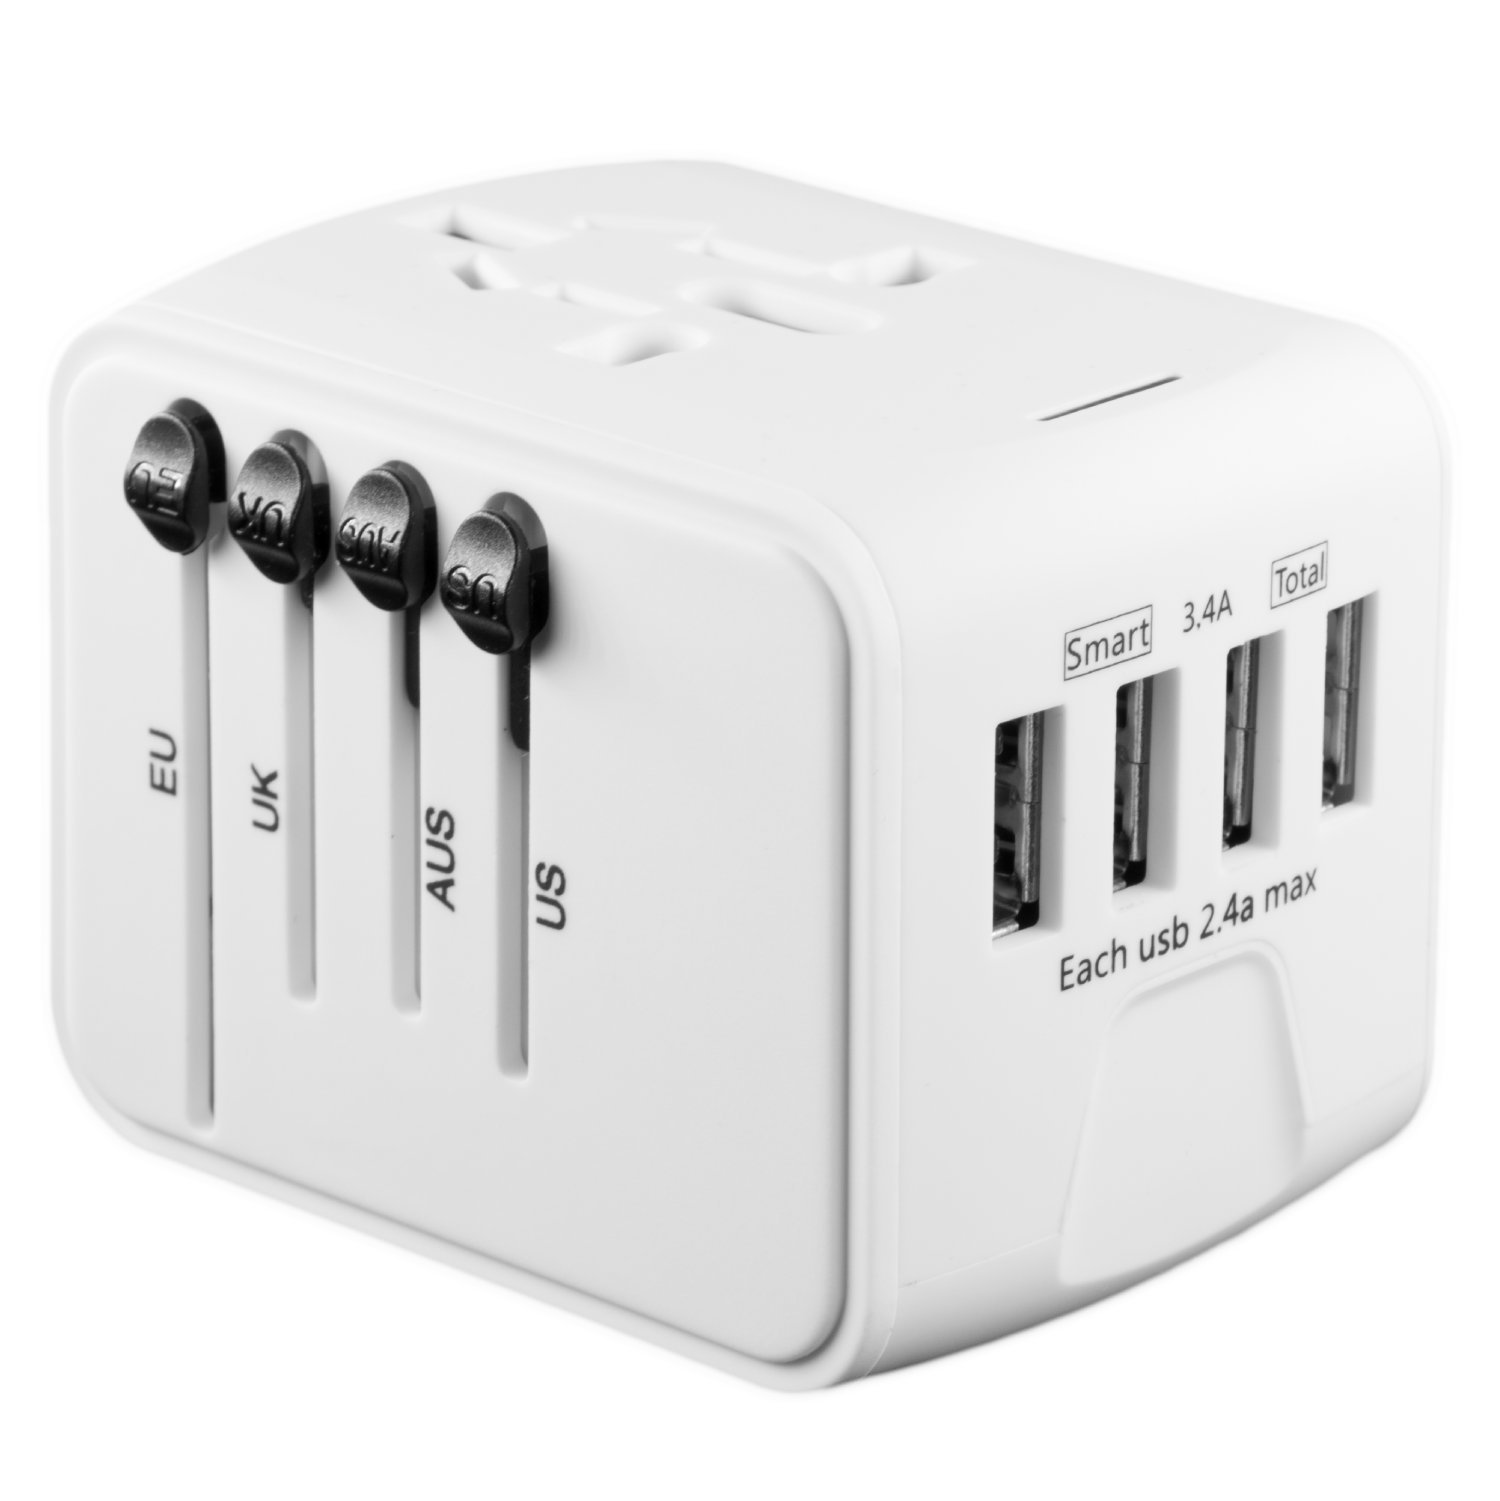 International Travel Adapter Universal Power Adaptor European Plug Converter Worldwide All in One with 2.4A 4 USB Ports and AC Socket US to Europe Plug Adapters for UK USA American EU AUS Asia (White)